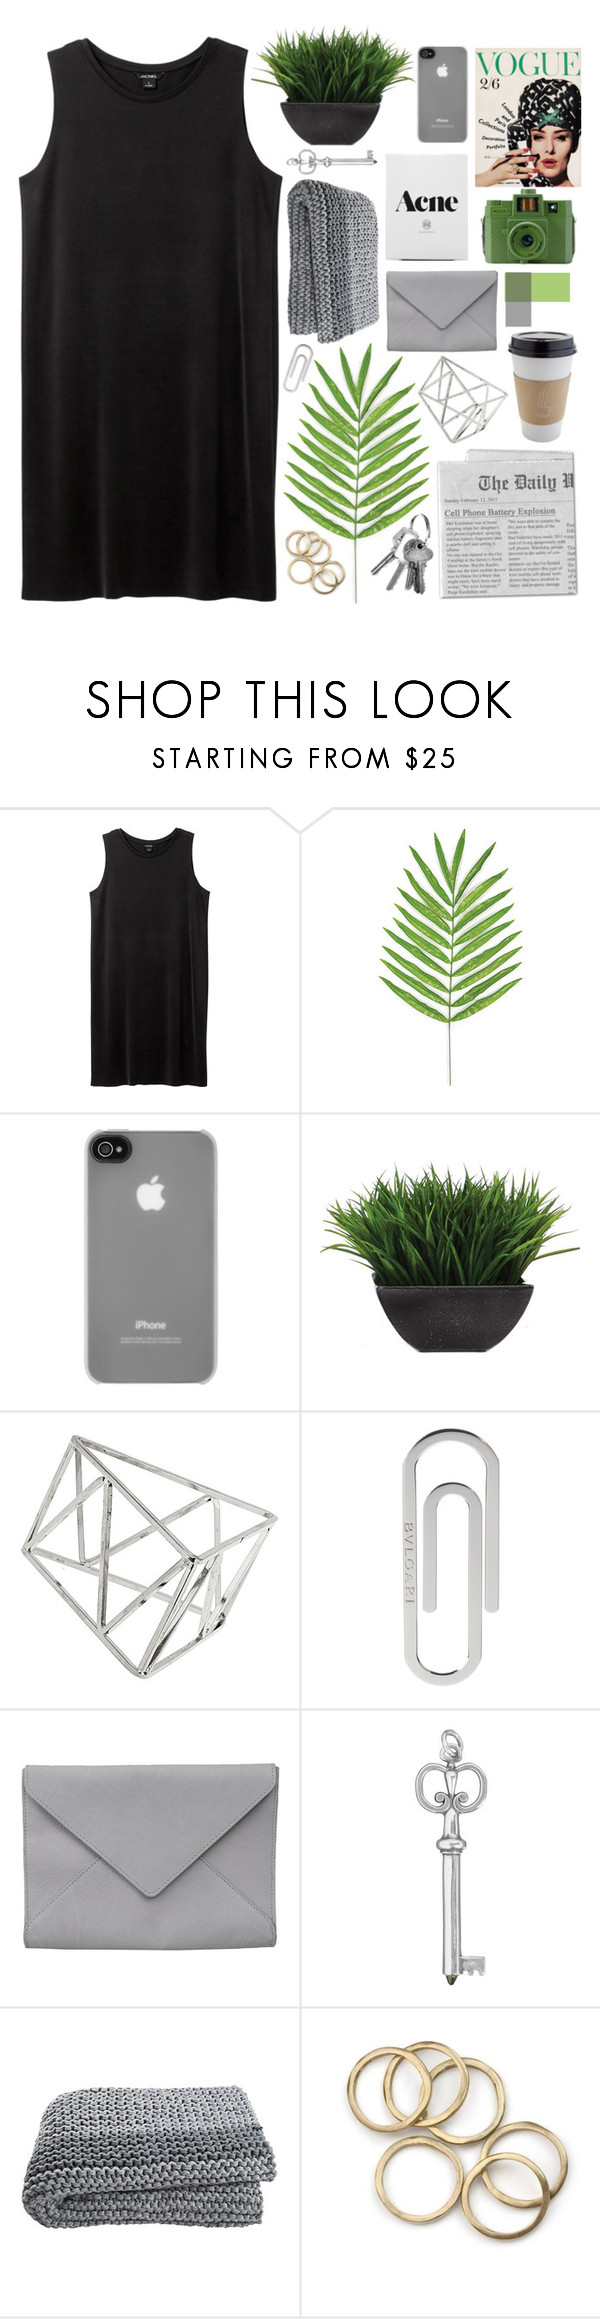 """☾boys seem to like the girls who laugh at everything"" by tumbling-through-tumblr ❤ liked on Polyvore featuring Monki, Incase, Lux-Art Silks, Guide London, Topshop, Bulgari and Ann Demeulemeester"